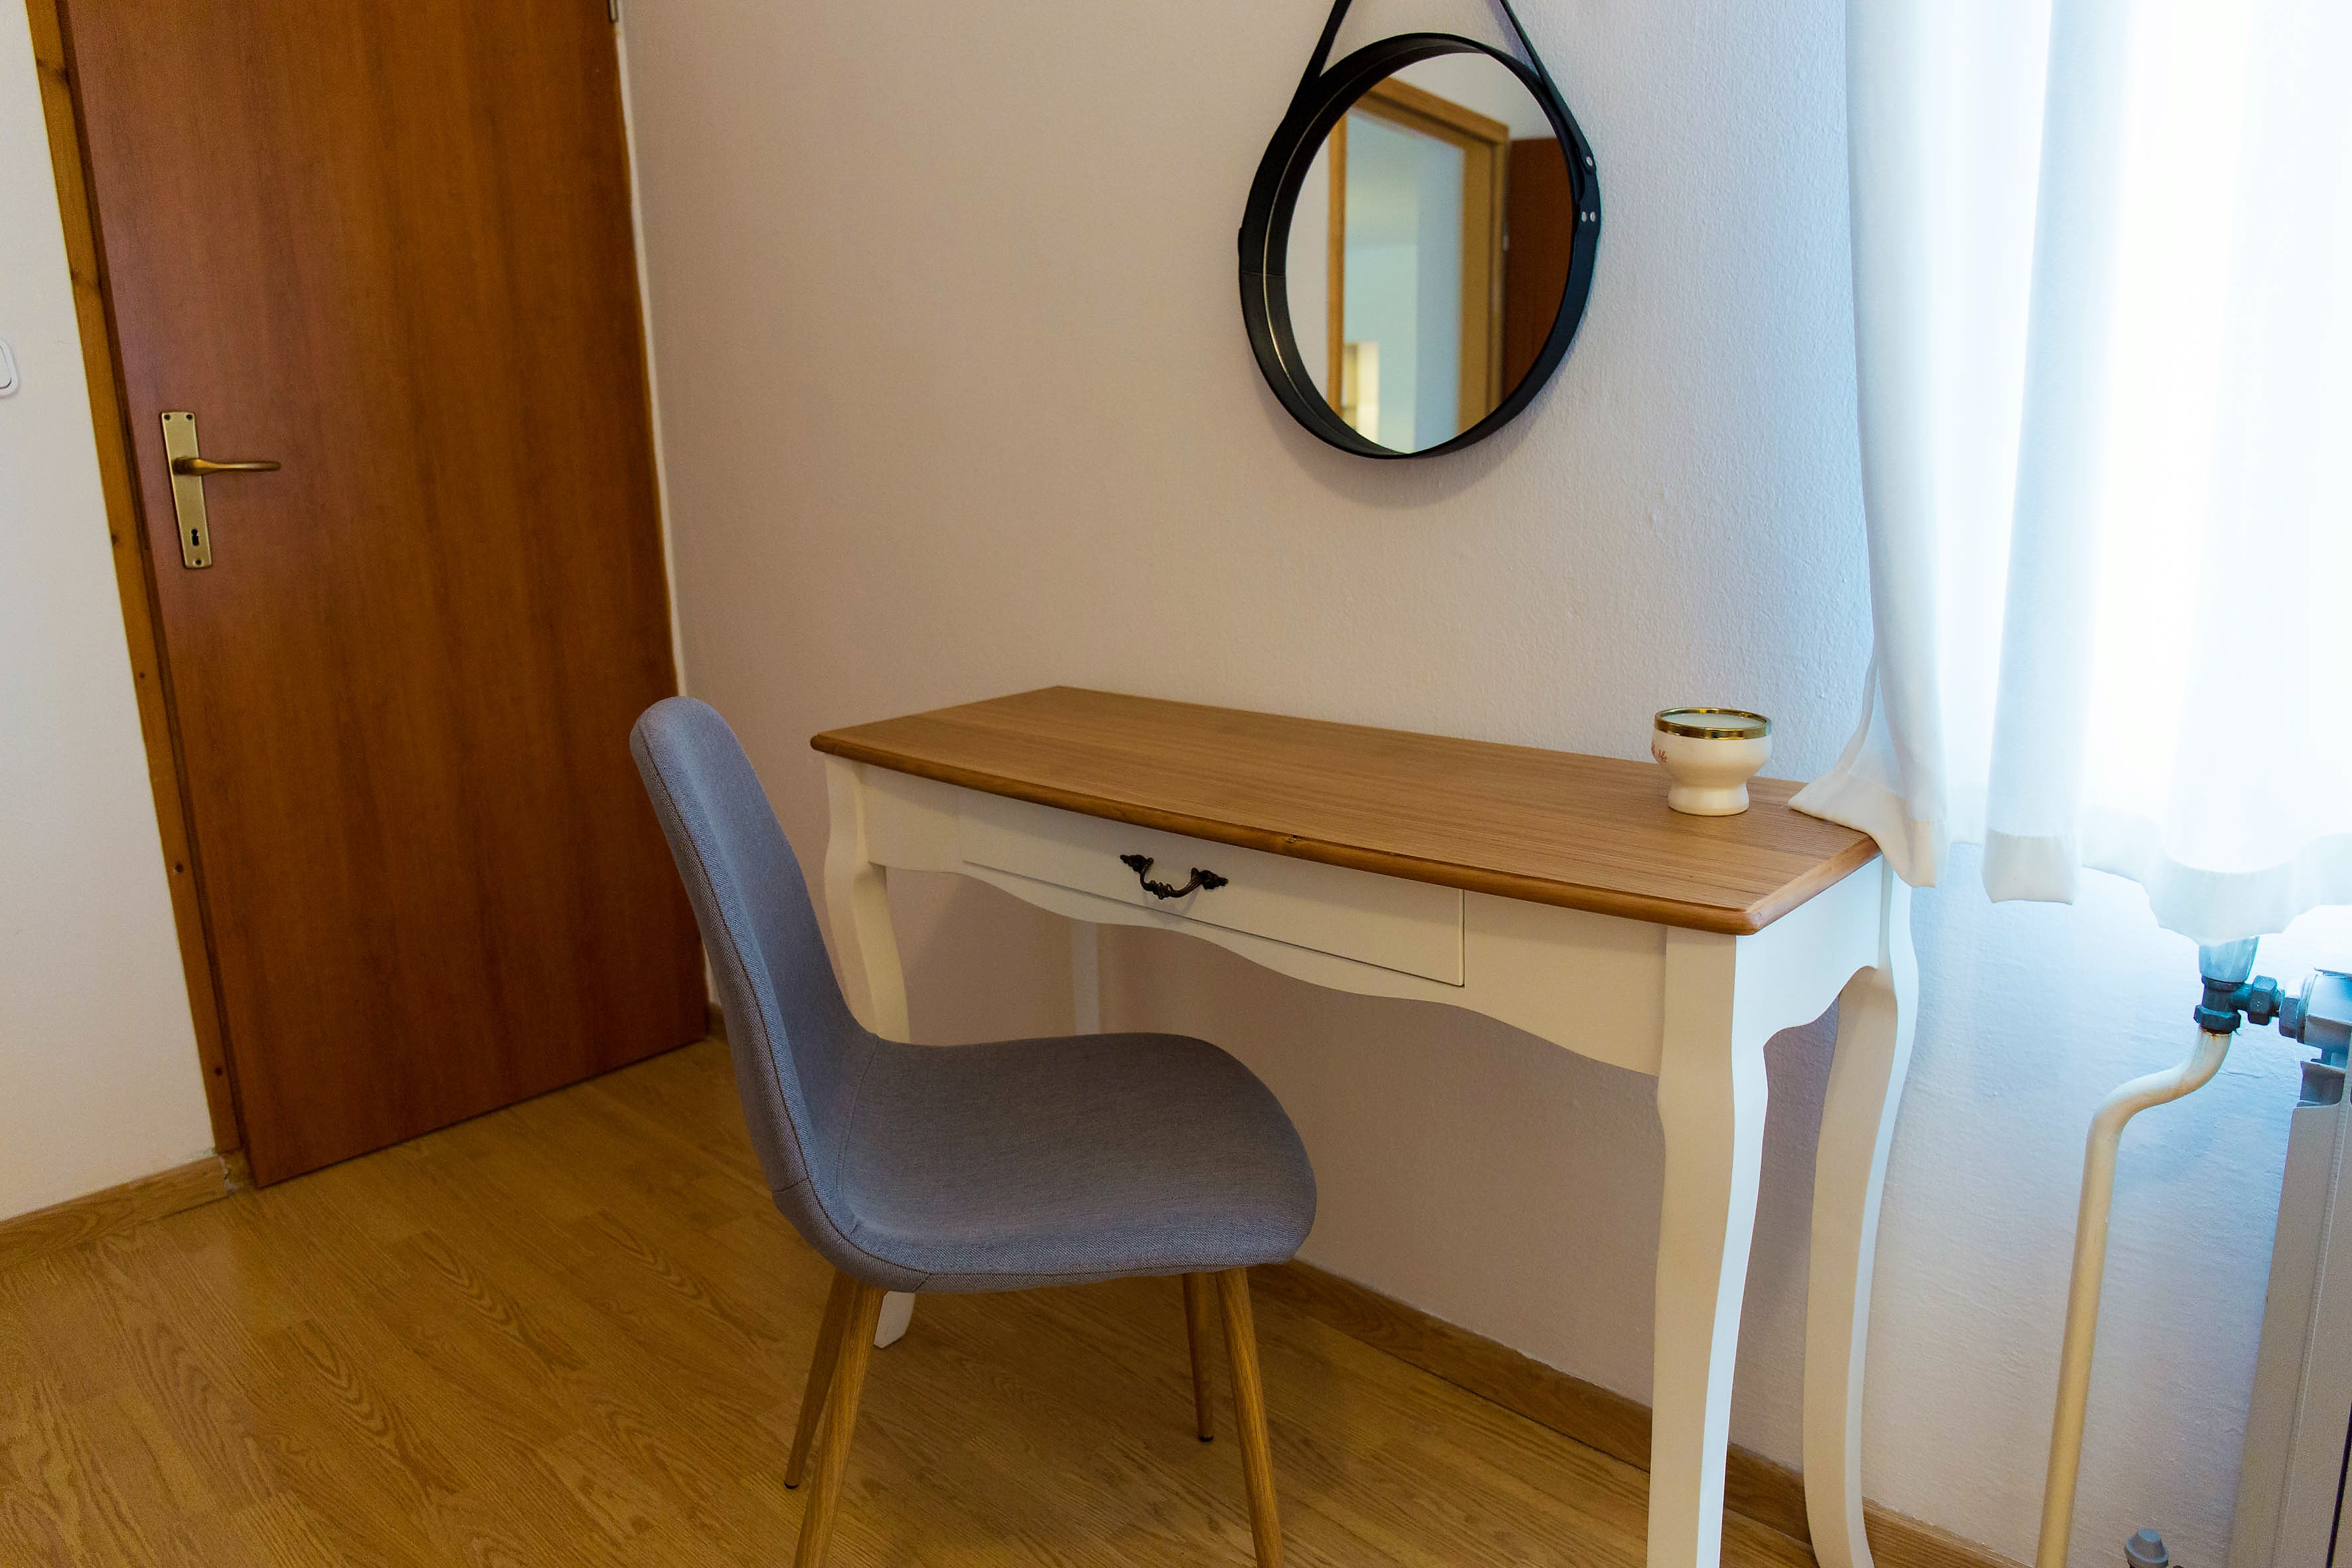 susnet table and round mirror (2).jpg